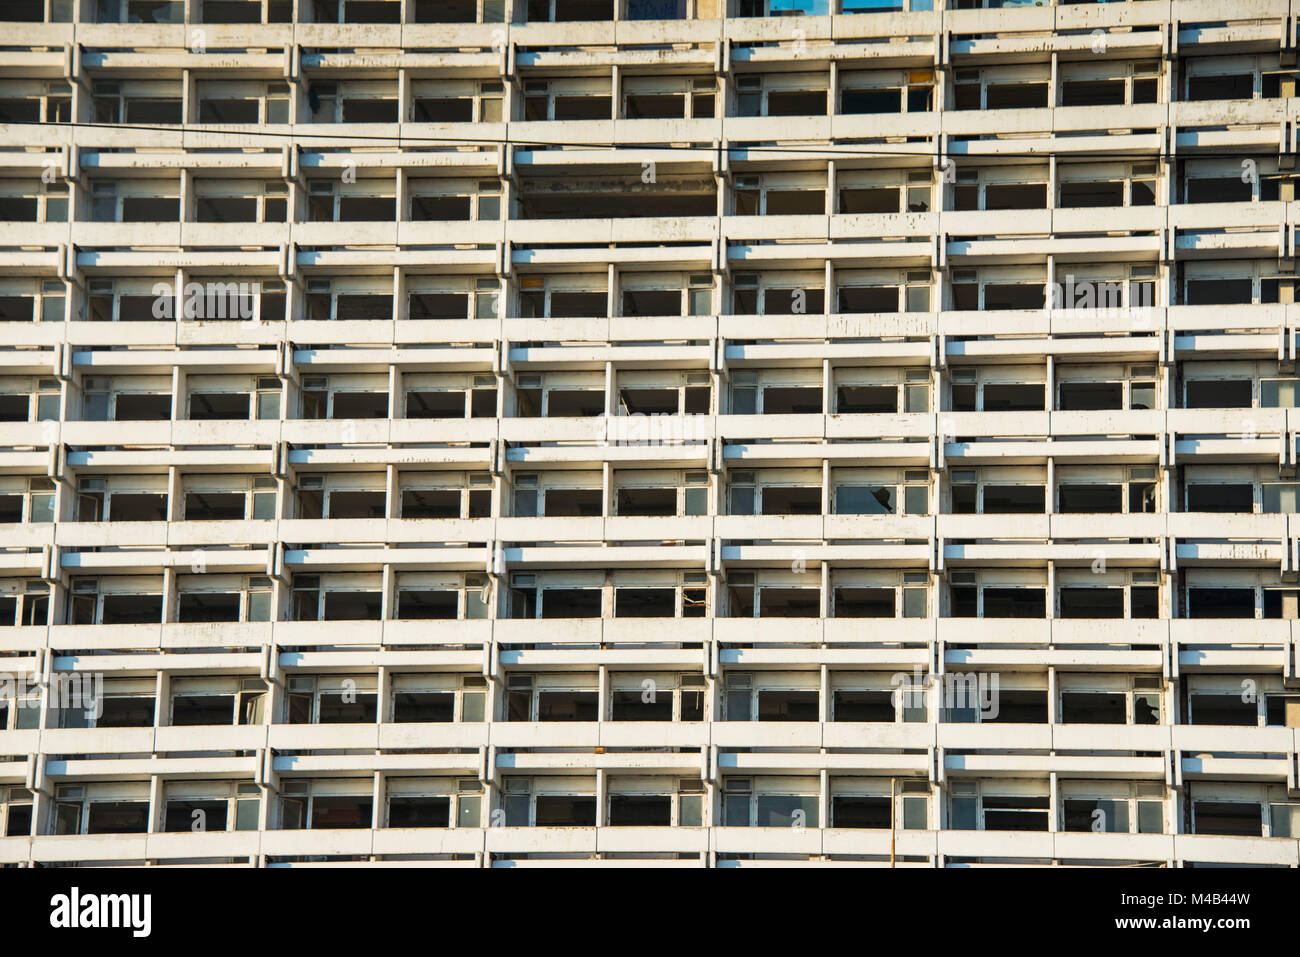 Apartment building in Chisinau,capital of Moldova,Eastern Europe - Stock Image